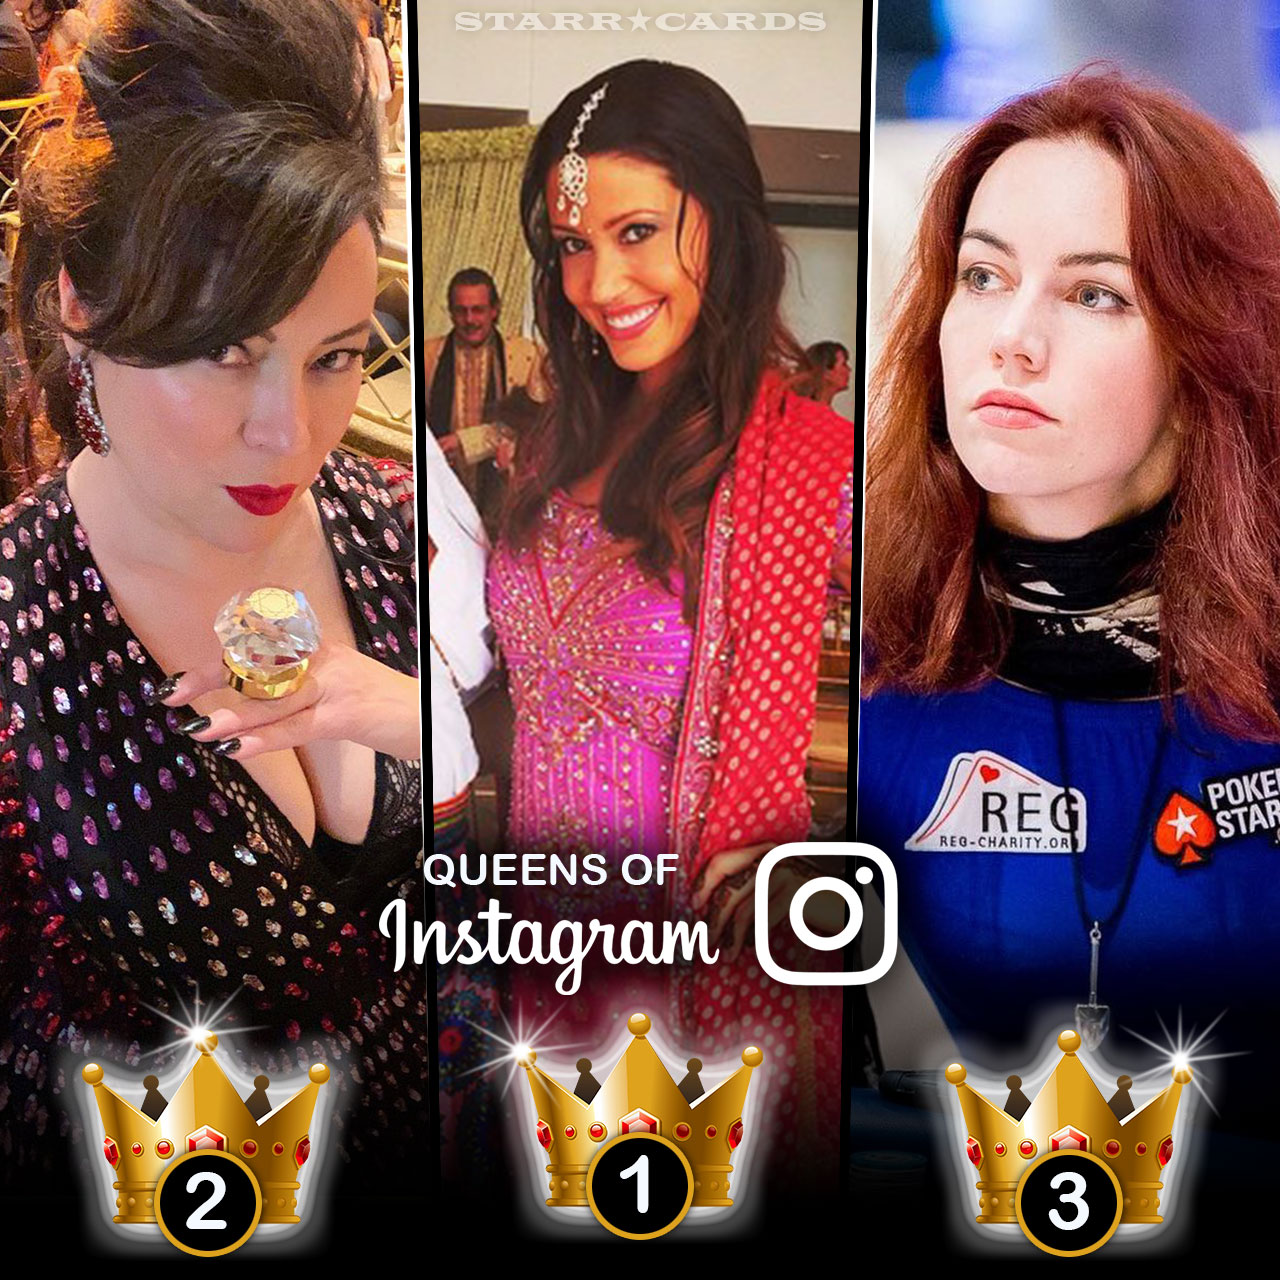 Queens of Poker: Shannon Elizabeth, Jennifer Tilly, Liv Boeree tops in followers on Instagram